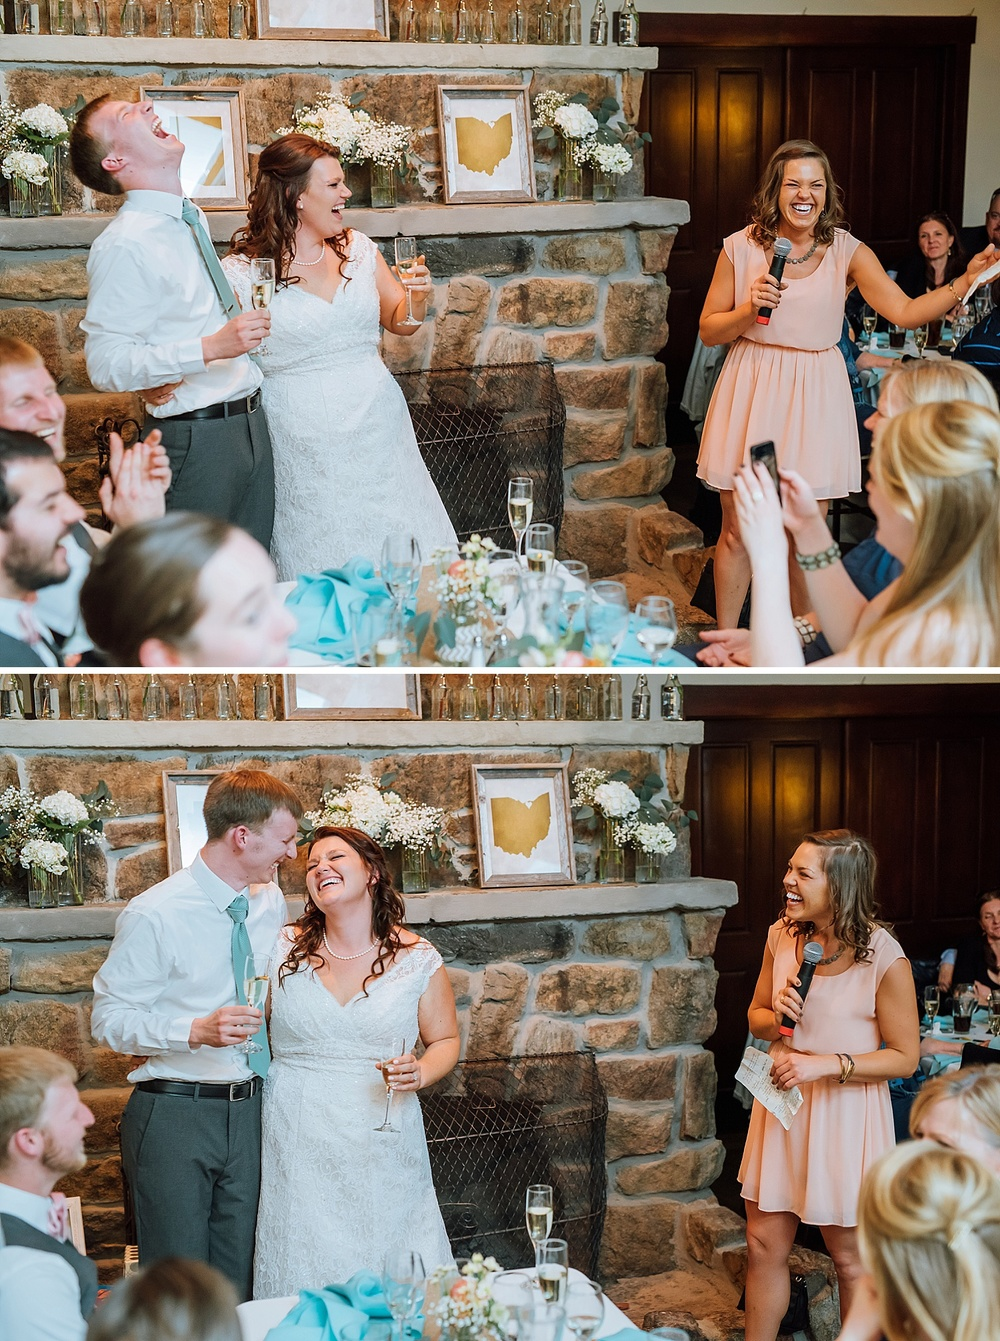 This blush, coral, light pink and teal, aqua, tiffany blue color scheme is perfect for this mountain themed wedding reception up in Estes Park, Colorado. I love the couple's reactions to the maid of honor's toast! Too cute! Photo by Maddie Mae Photography